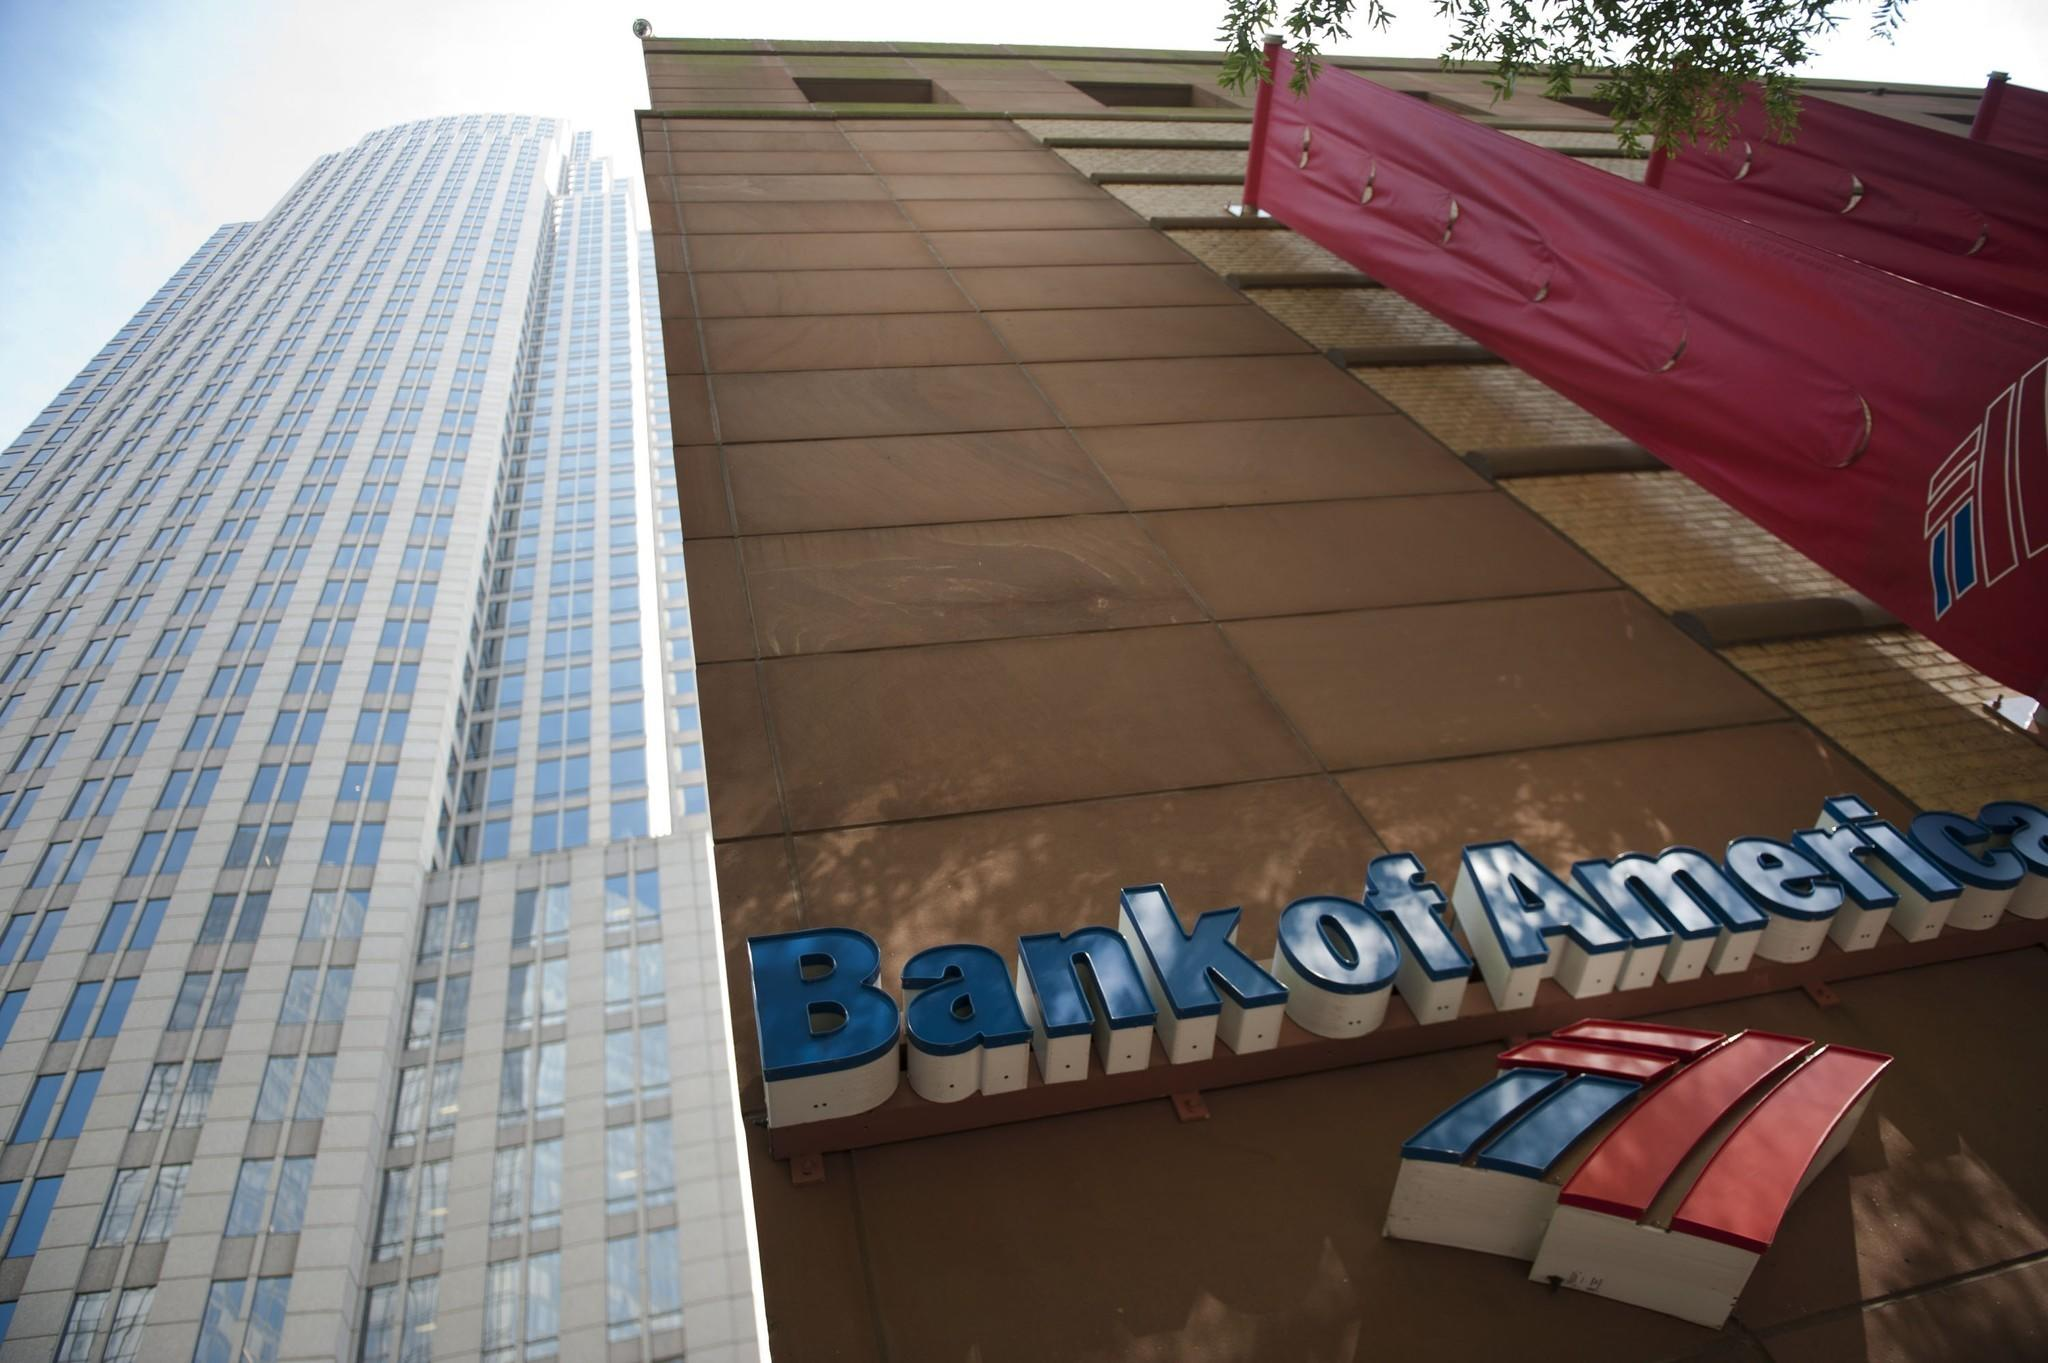 Bank of America has agreed to pay about $9.5 billion to settle government claims tied to faulty mortgages.